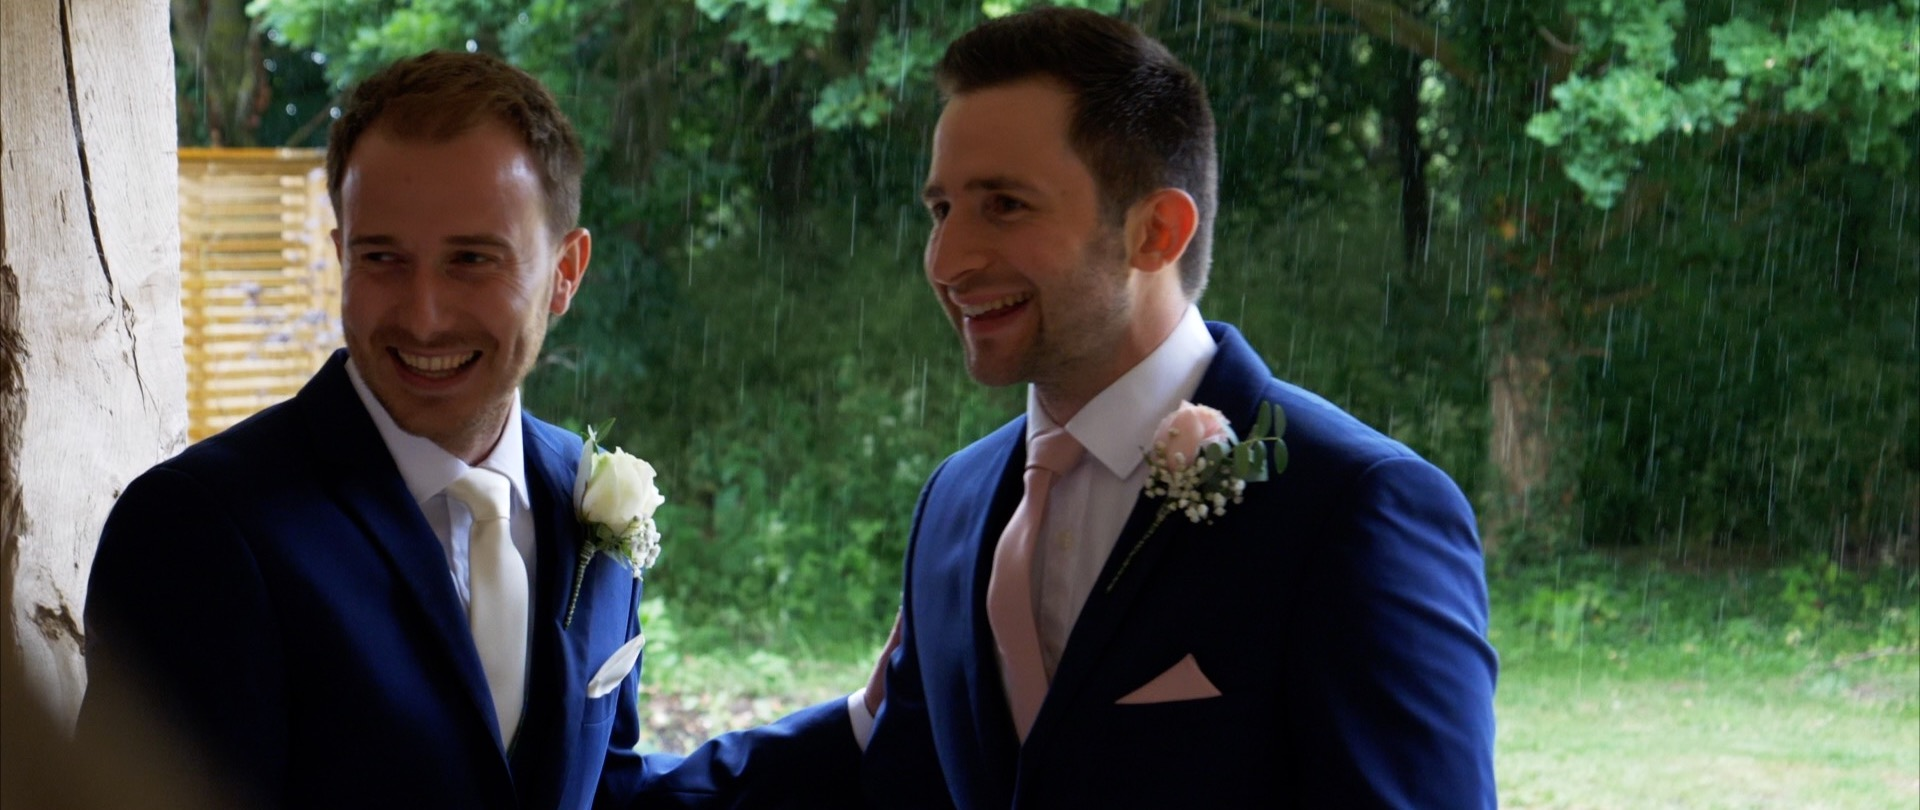 Groom and Best Man at Apton Hall Rochford.jpg